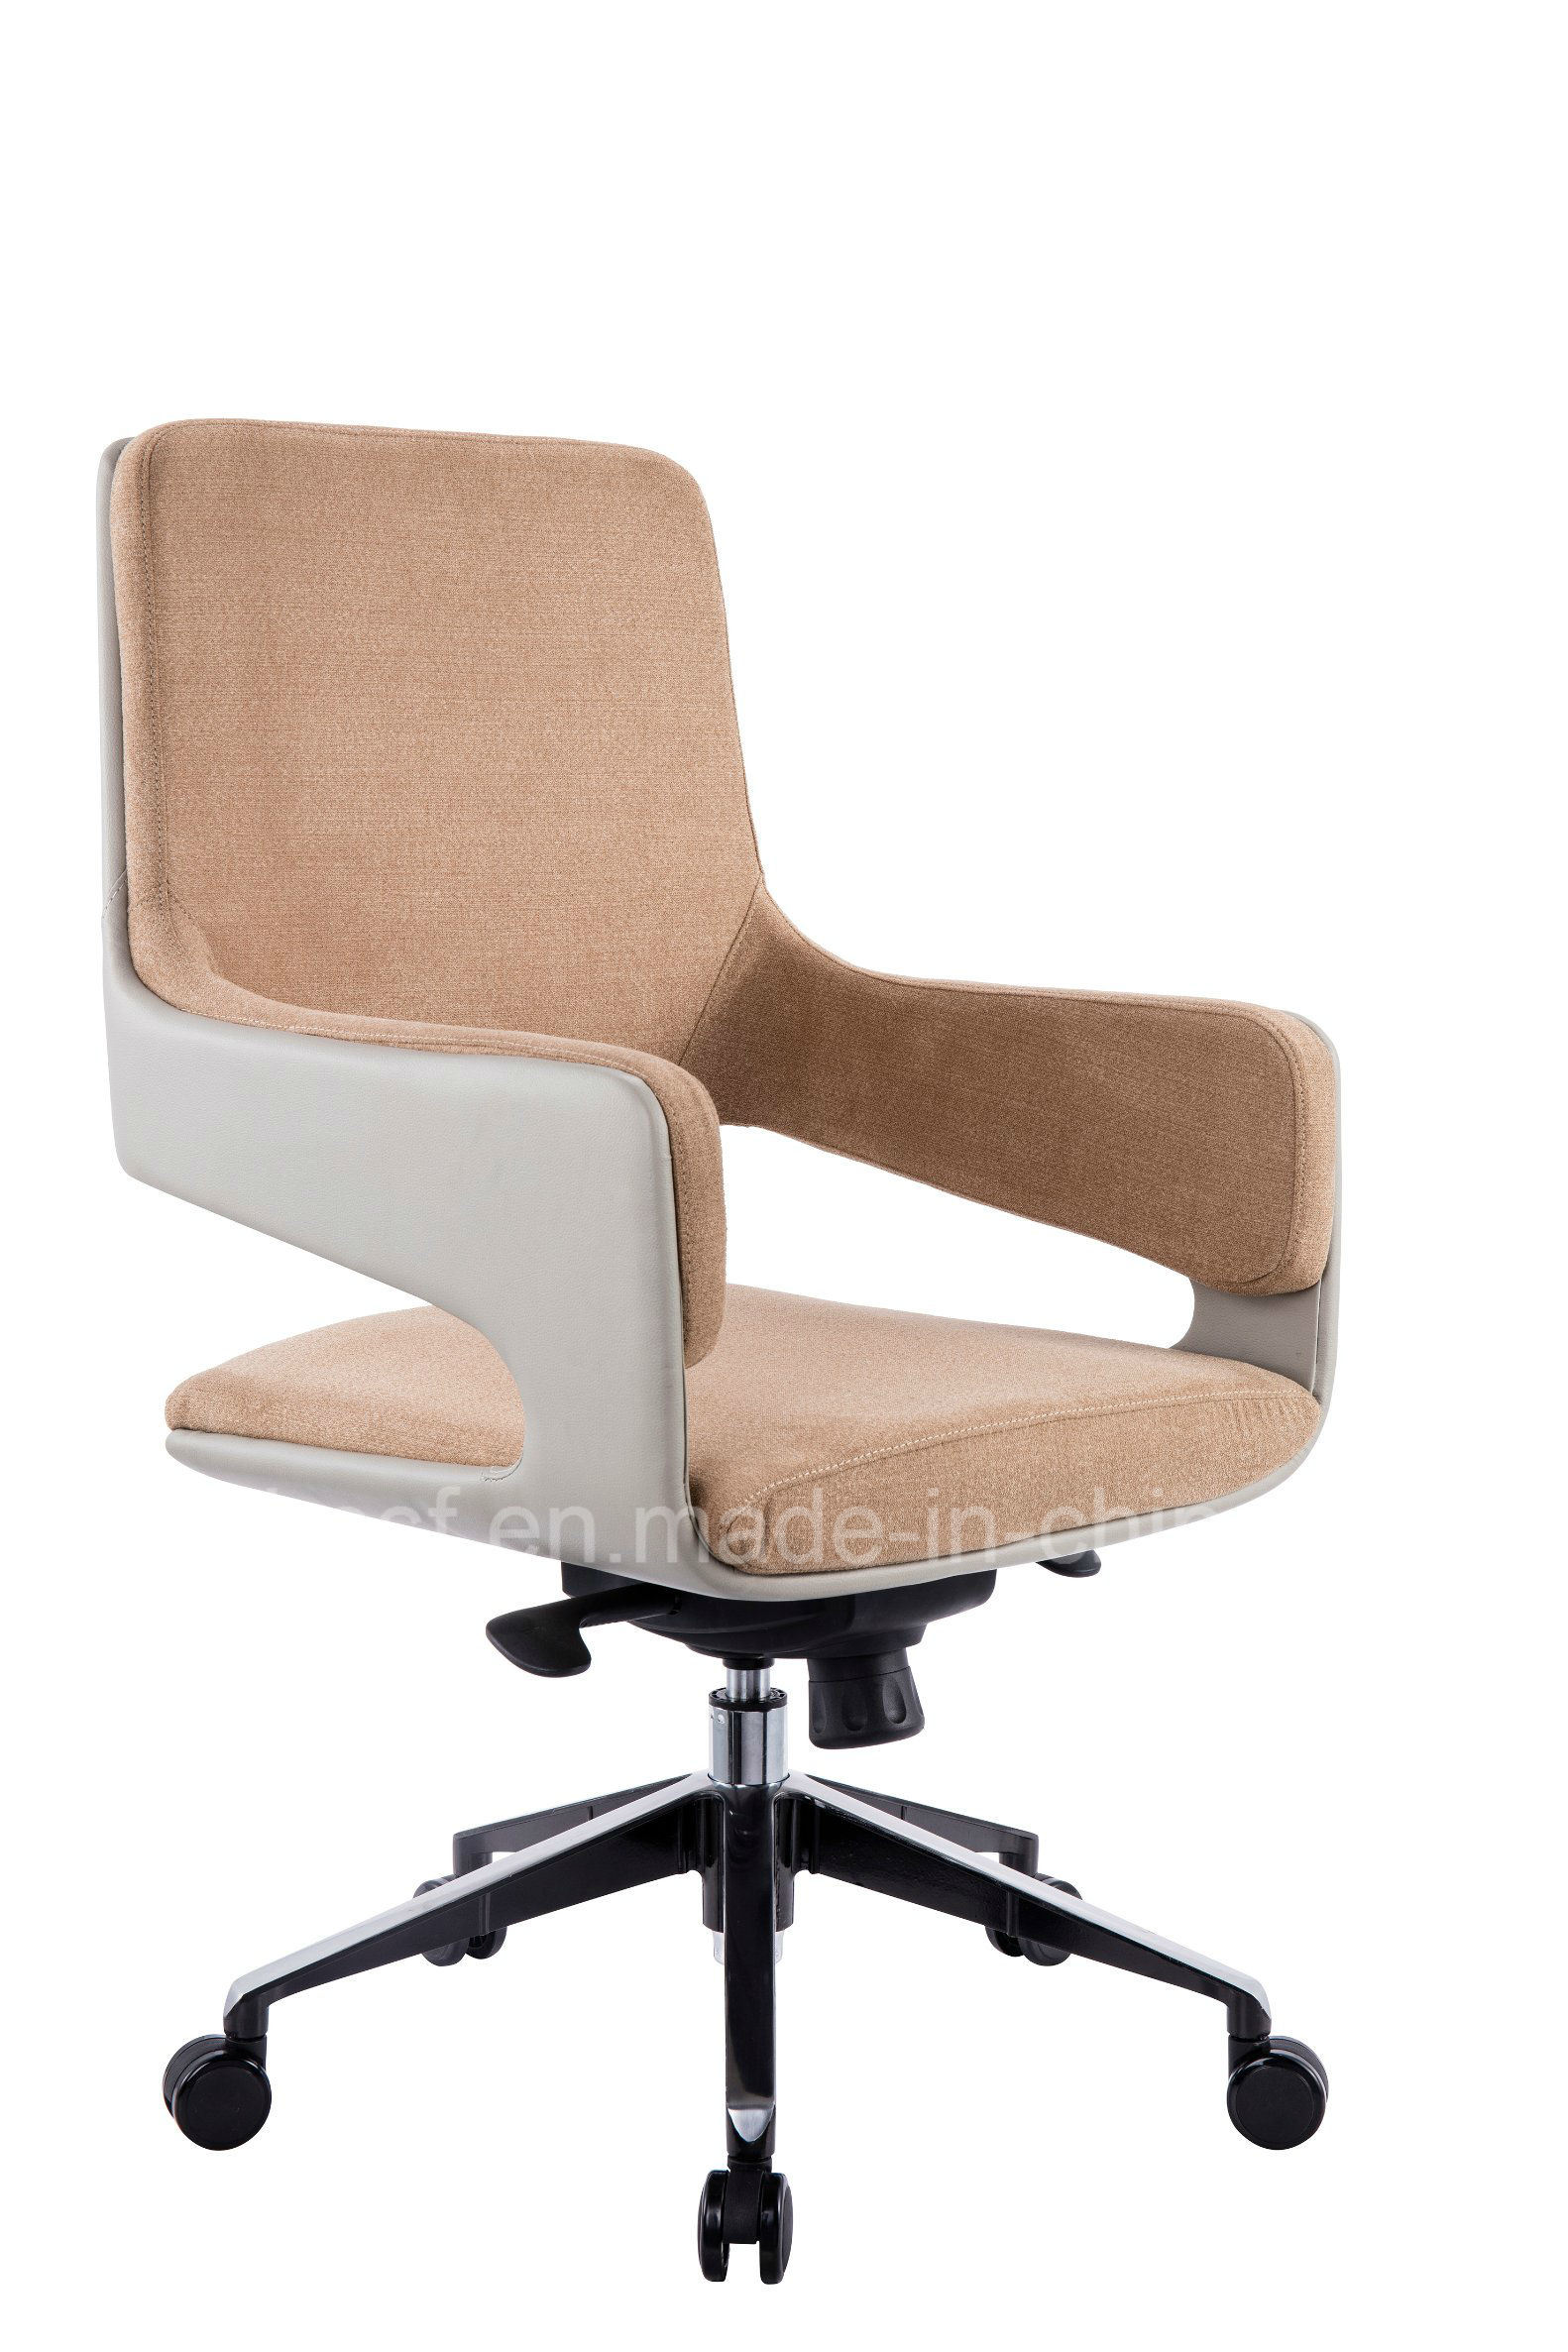 Hot Sell Staff Chair with Arm (Ht-852b)